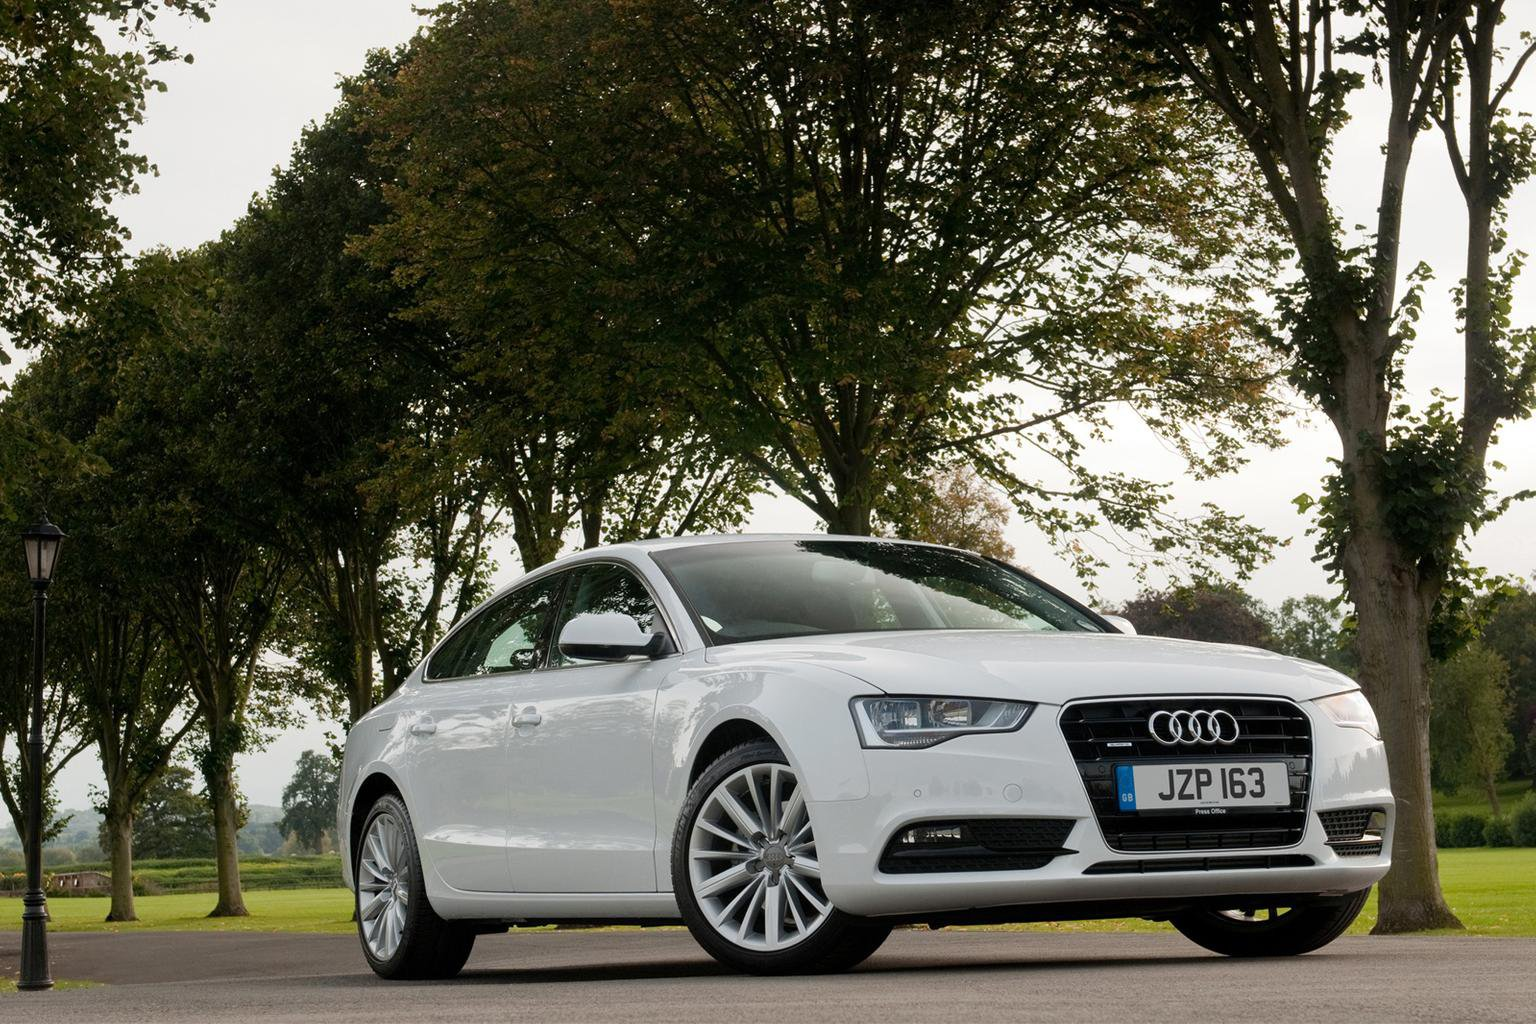 Save loads on Audis in this week's deals